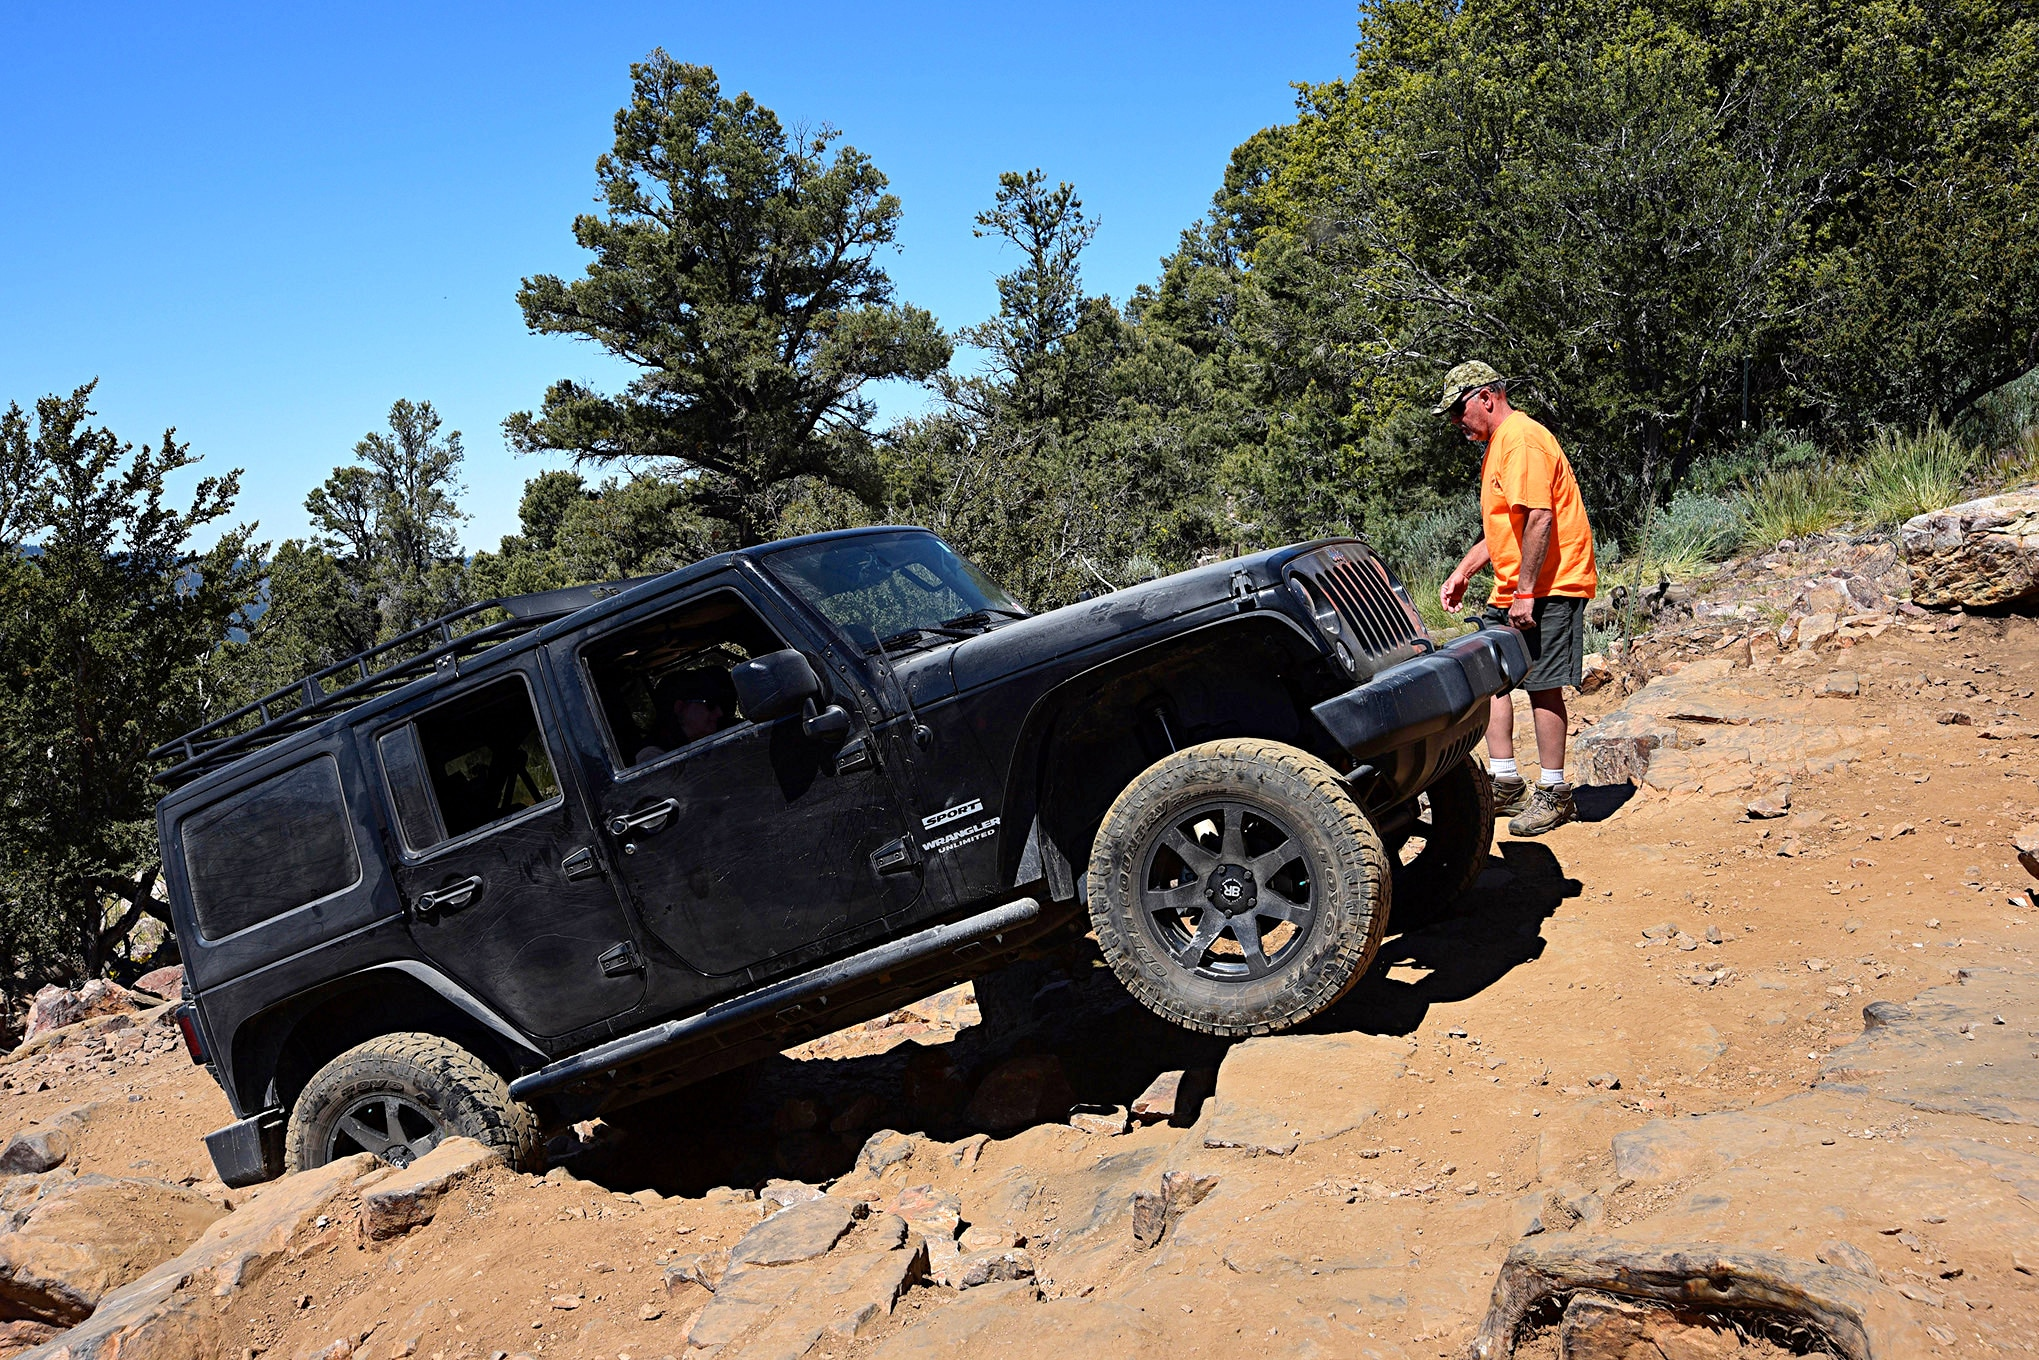 039 jeep event big bear forest fest 2019 inland empire